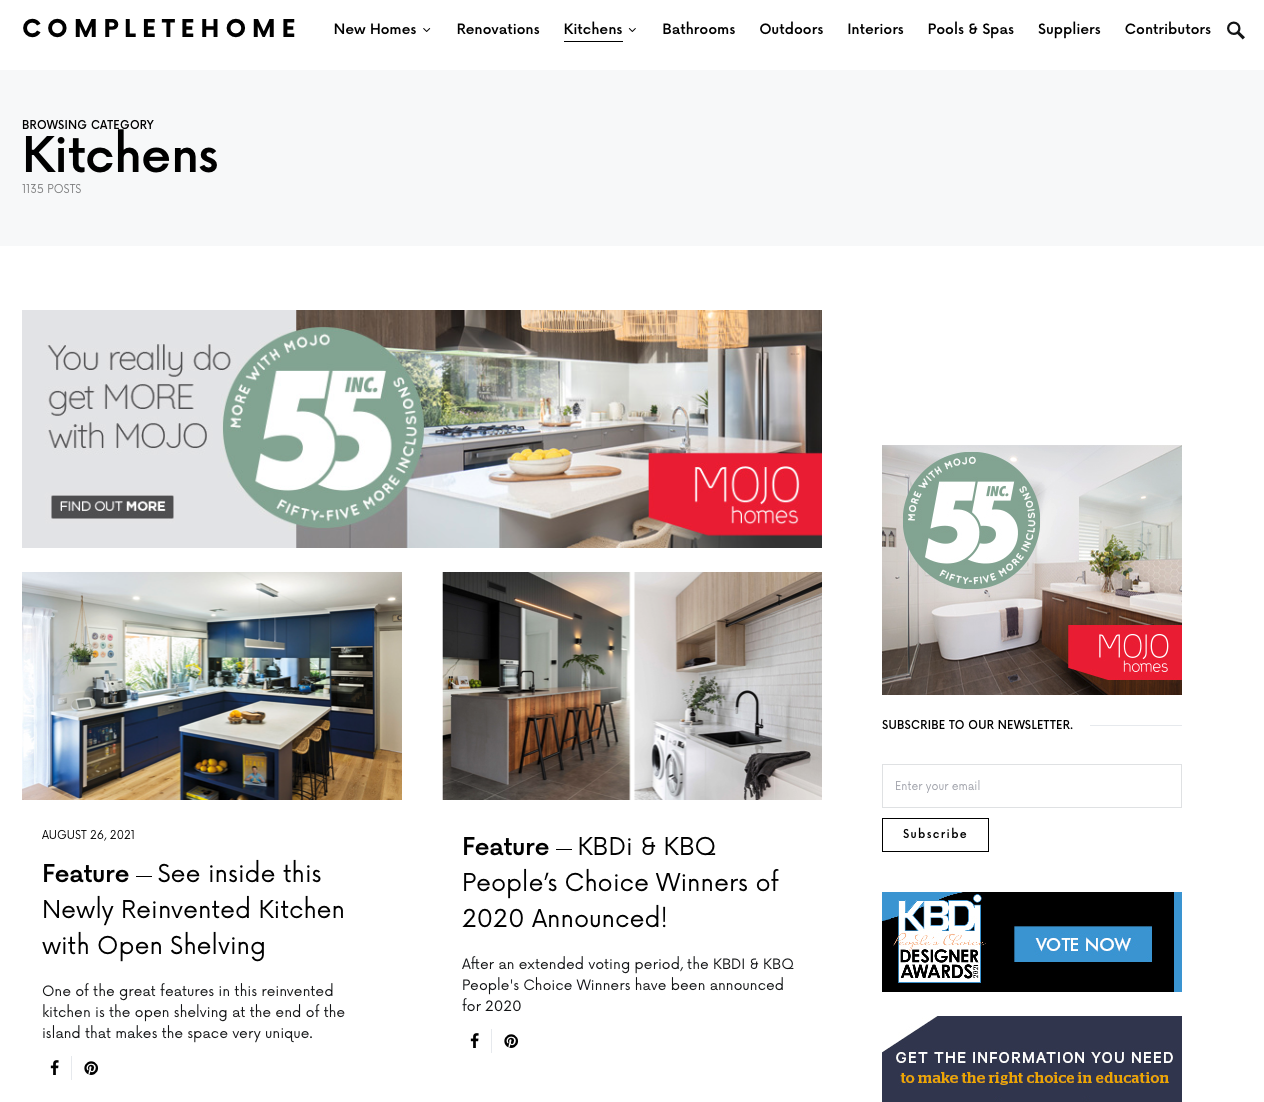 screenshot of the complete homes kitchen website page